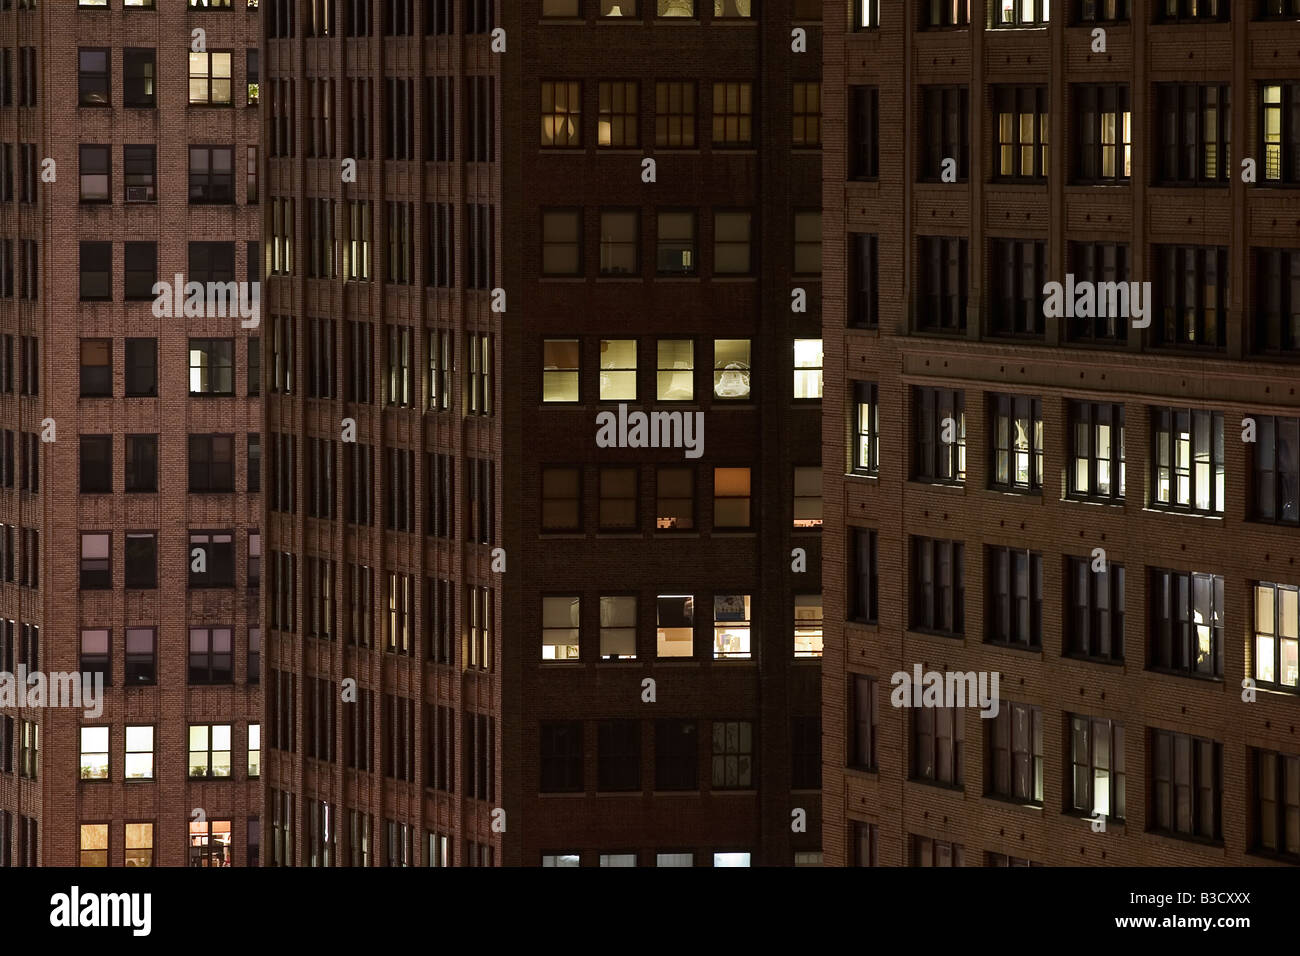 Building, close-up Stock Photo